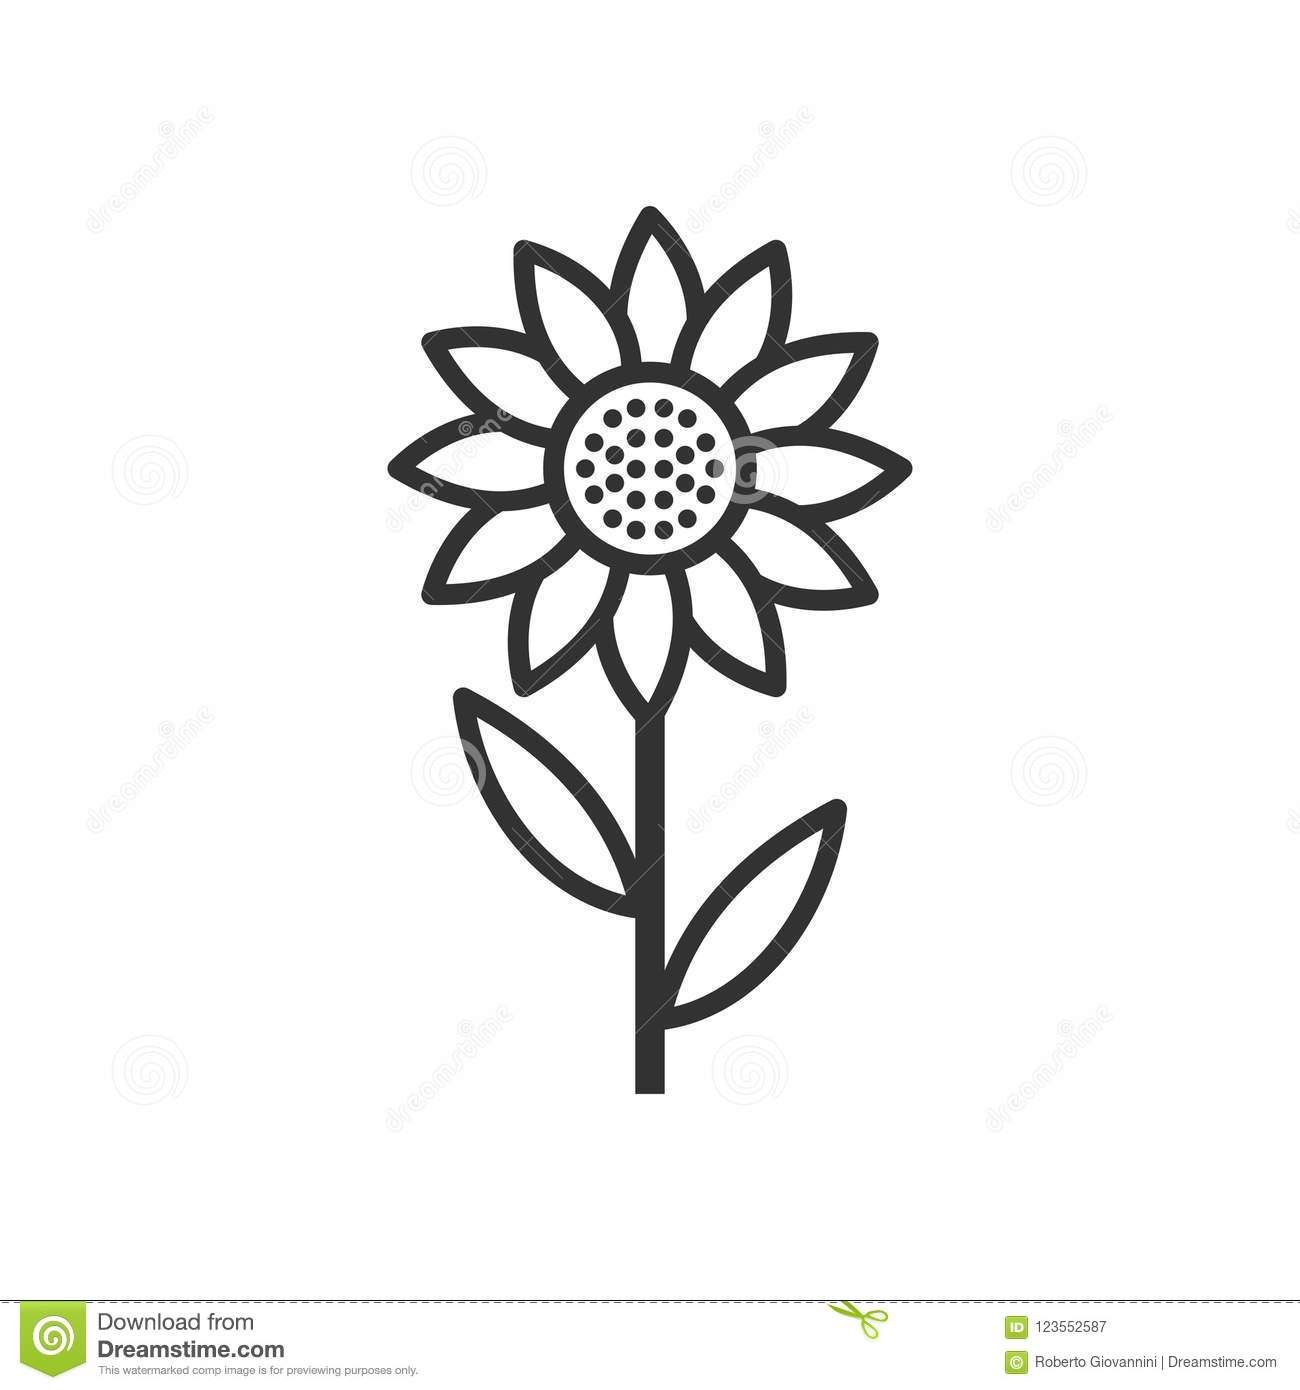 Sunflower Outline Flat Icon on White